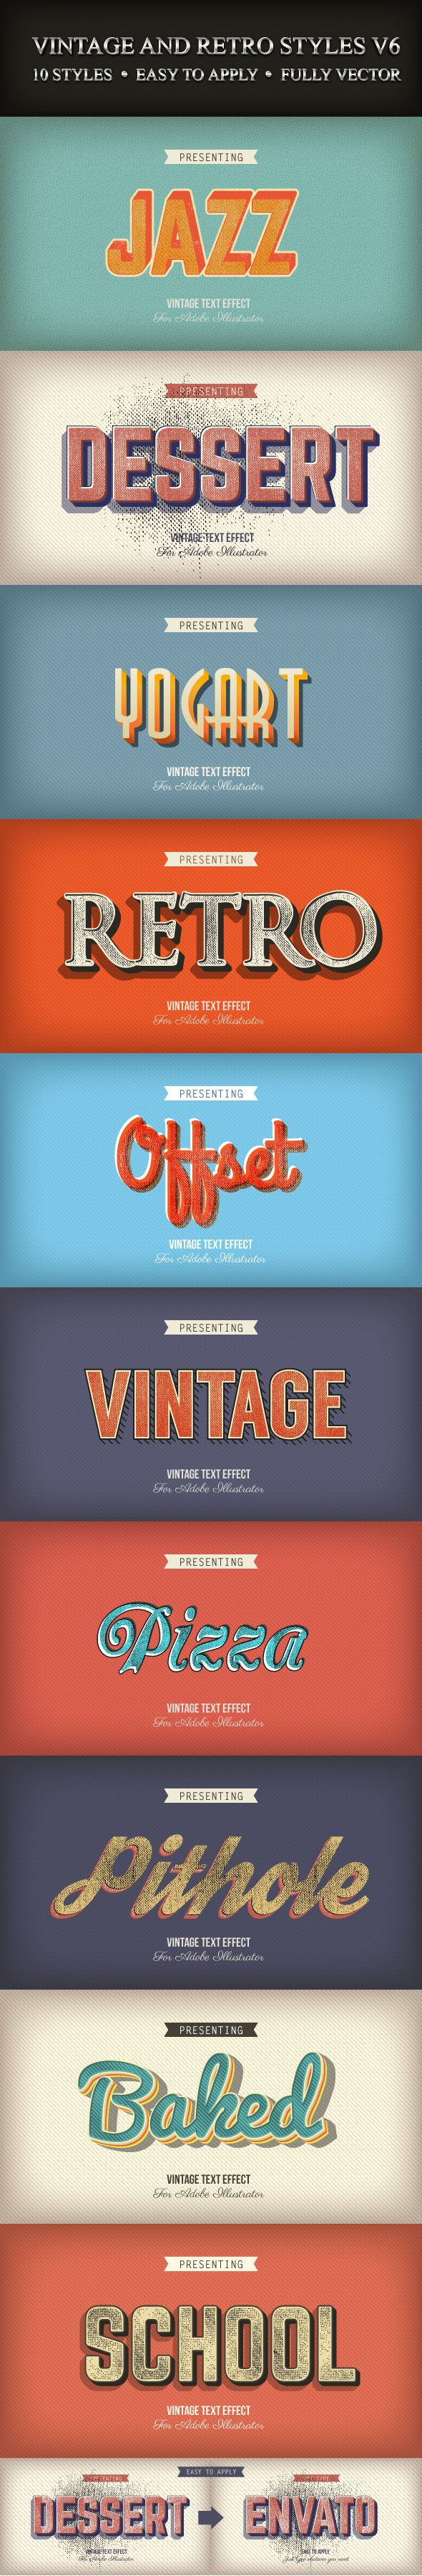 Vintage and Retro Styles for Adobe Illustrator #design #ai Download: http://graphicriver.net/item/vintage-and-retro-styles-v6/9184160?ref=ksioks